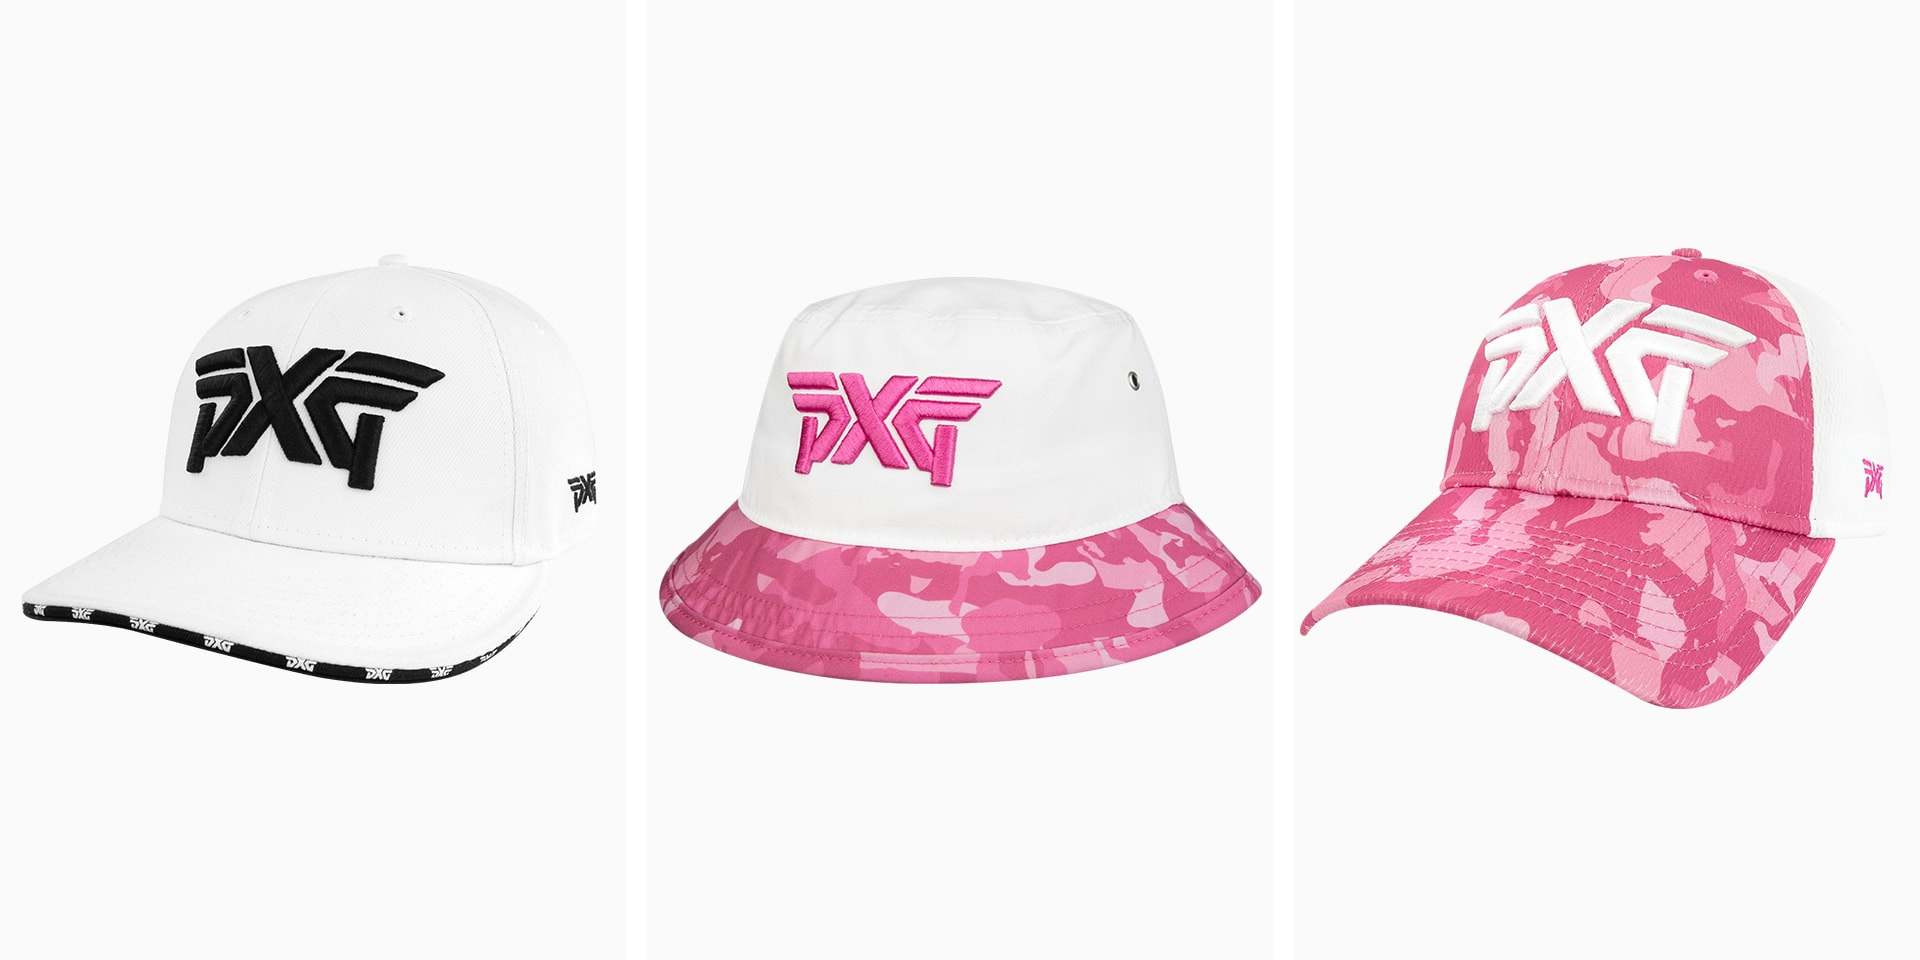 PXG Fairway Camo hats in pink and repeating logo 9 20 Cap